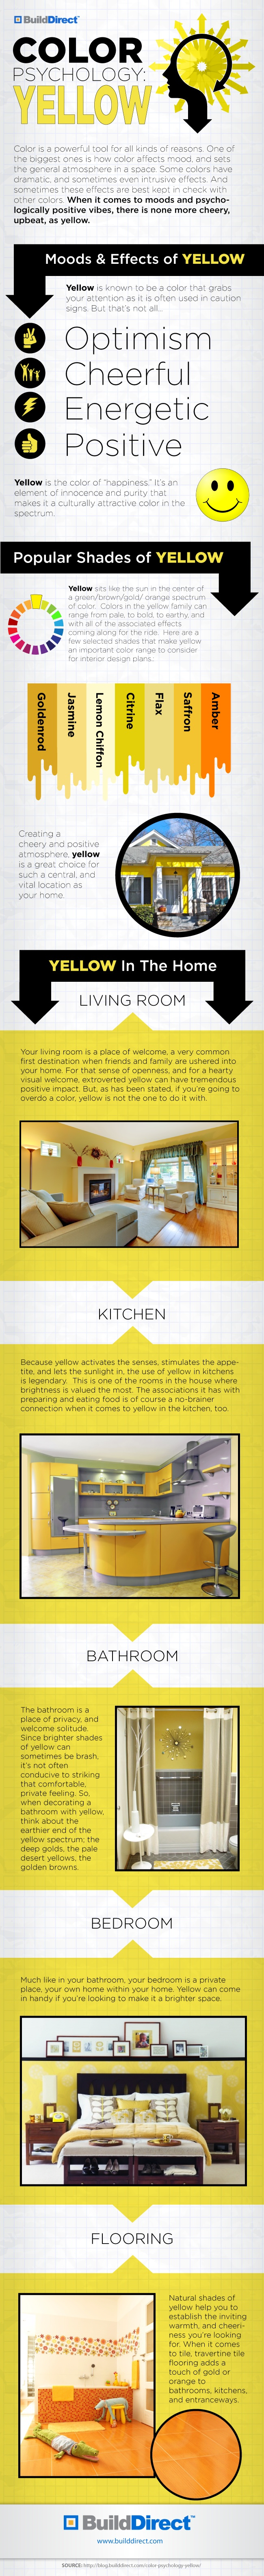 Emotional Interior Design Using Yellow